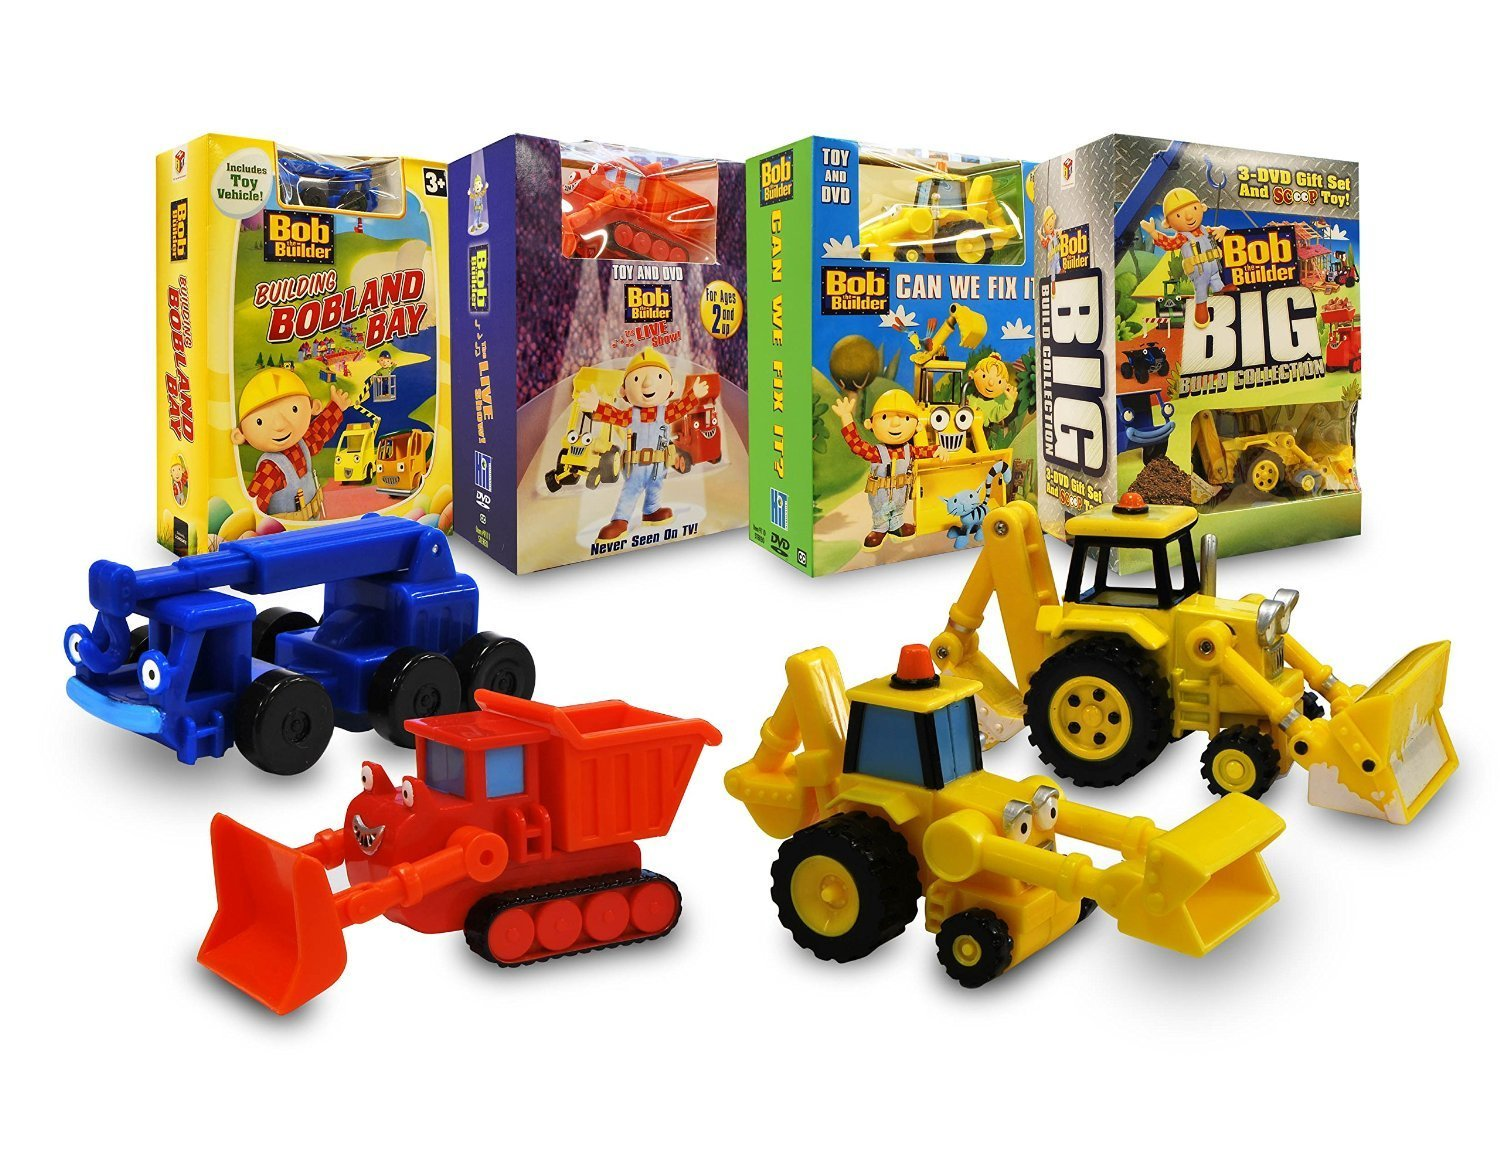 Bob the builder live online dvd rental - Amazon Com Bob The Builder Construction Set With Toy Building Bobland Bay The Live Show Can We Fix It Big Build Collection Rob Rackstraw